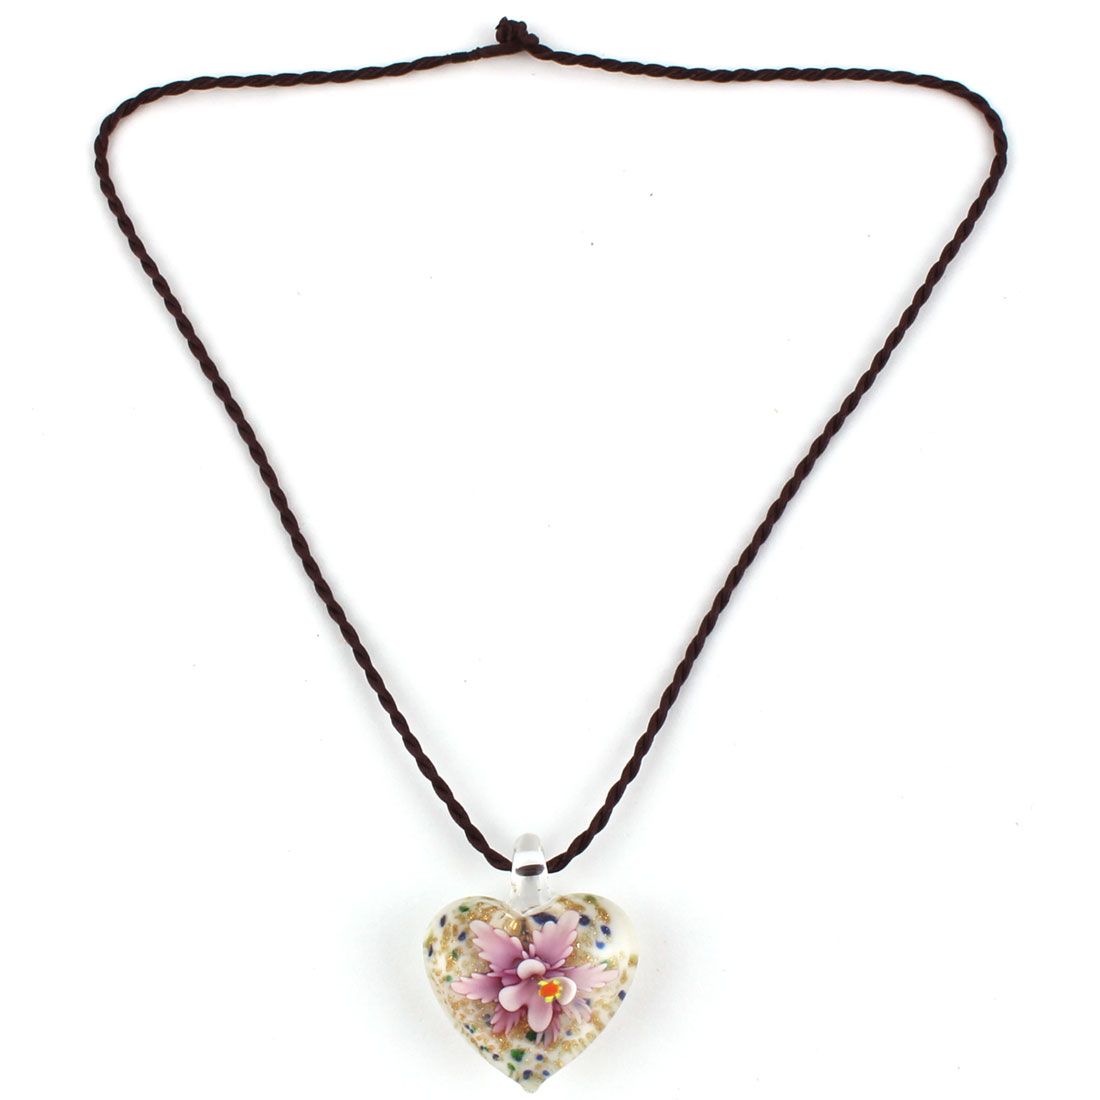 Home Ladies Glass Flower Pattern Heart Shaped Pendant Neck Ornament Necklace Pink